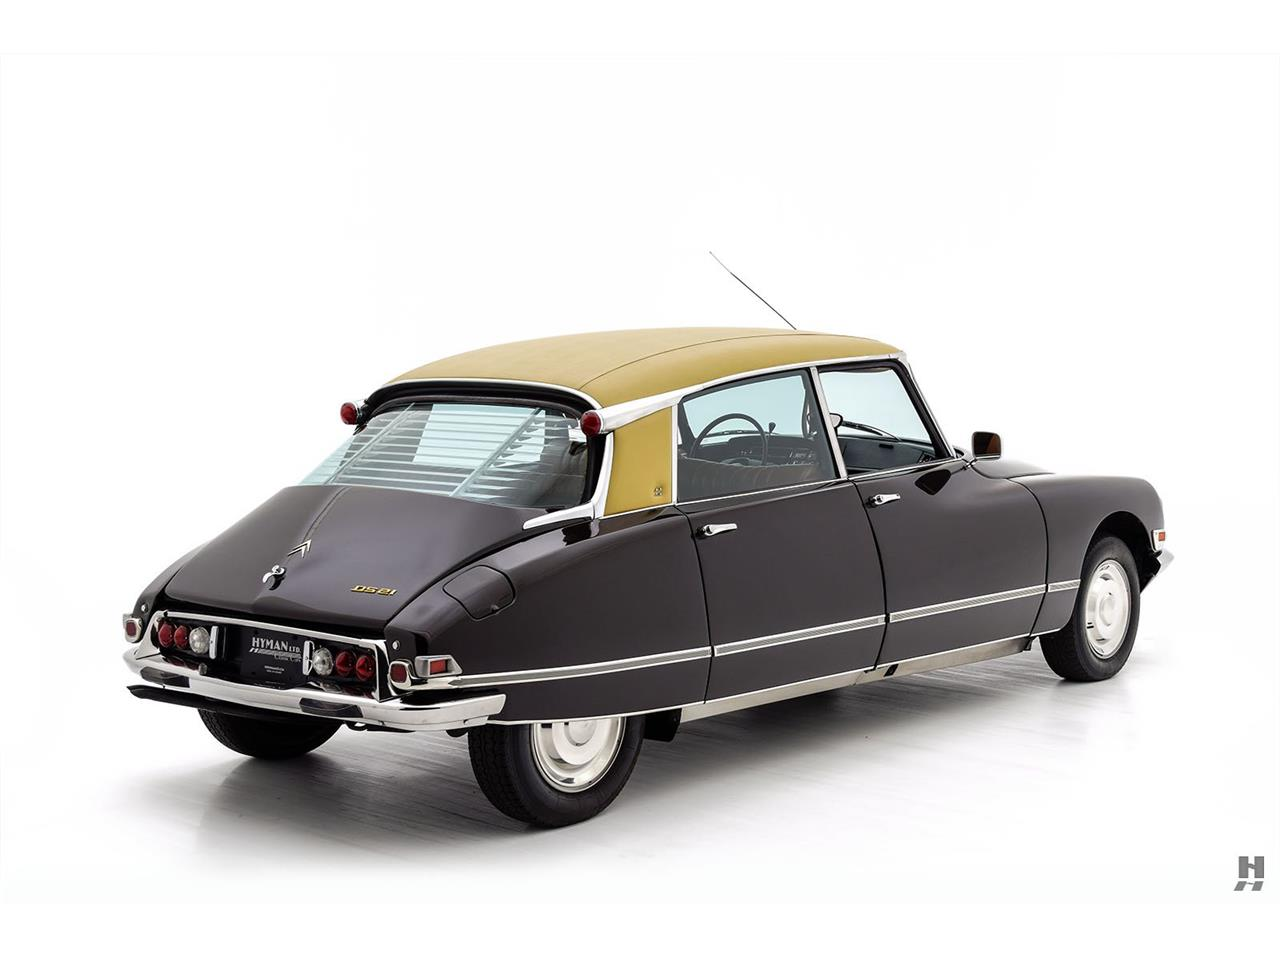 Large Picture of 1969 Citroen DS21 Pallas - $79,500.00 Offered by Hyman Ltd. Classic Cars - OVD1